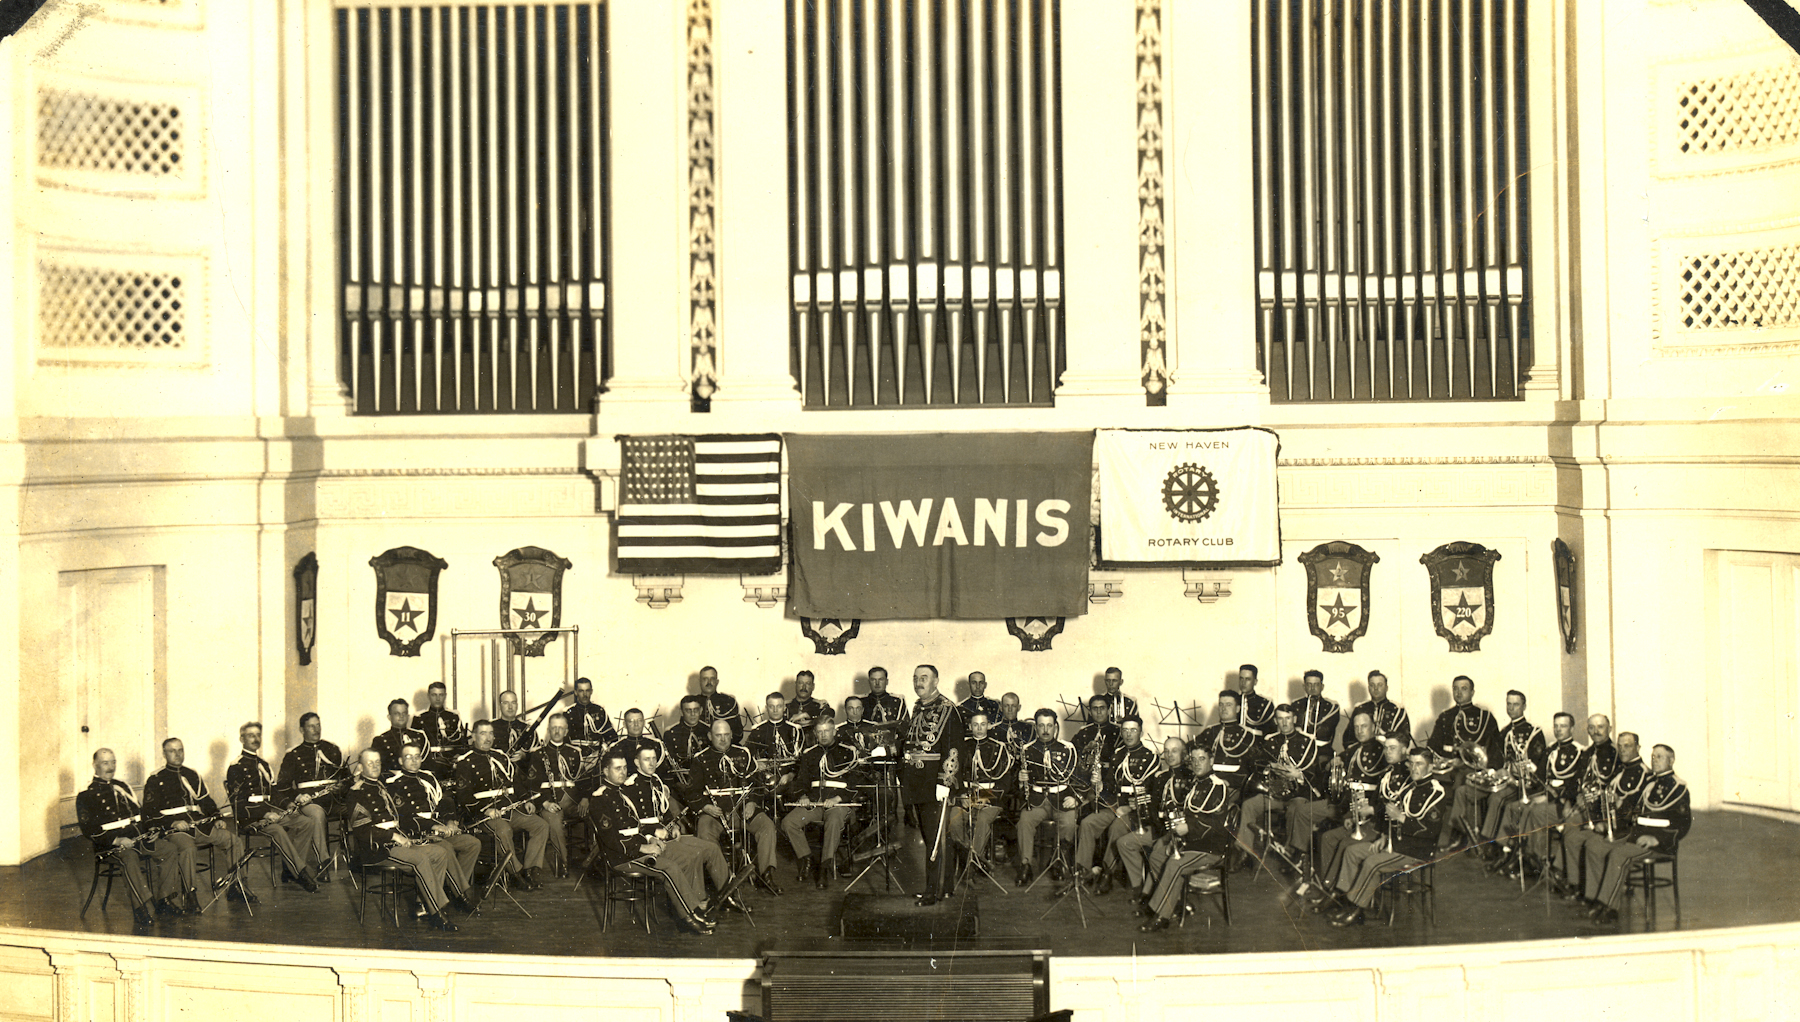 The Marine Band on tour at Woolsey Hall at Yale University in New Haven, Conn., on Oct. 18, 1921.